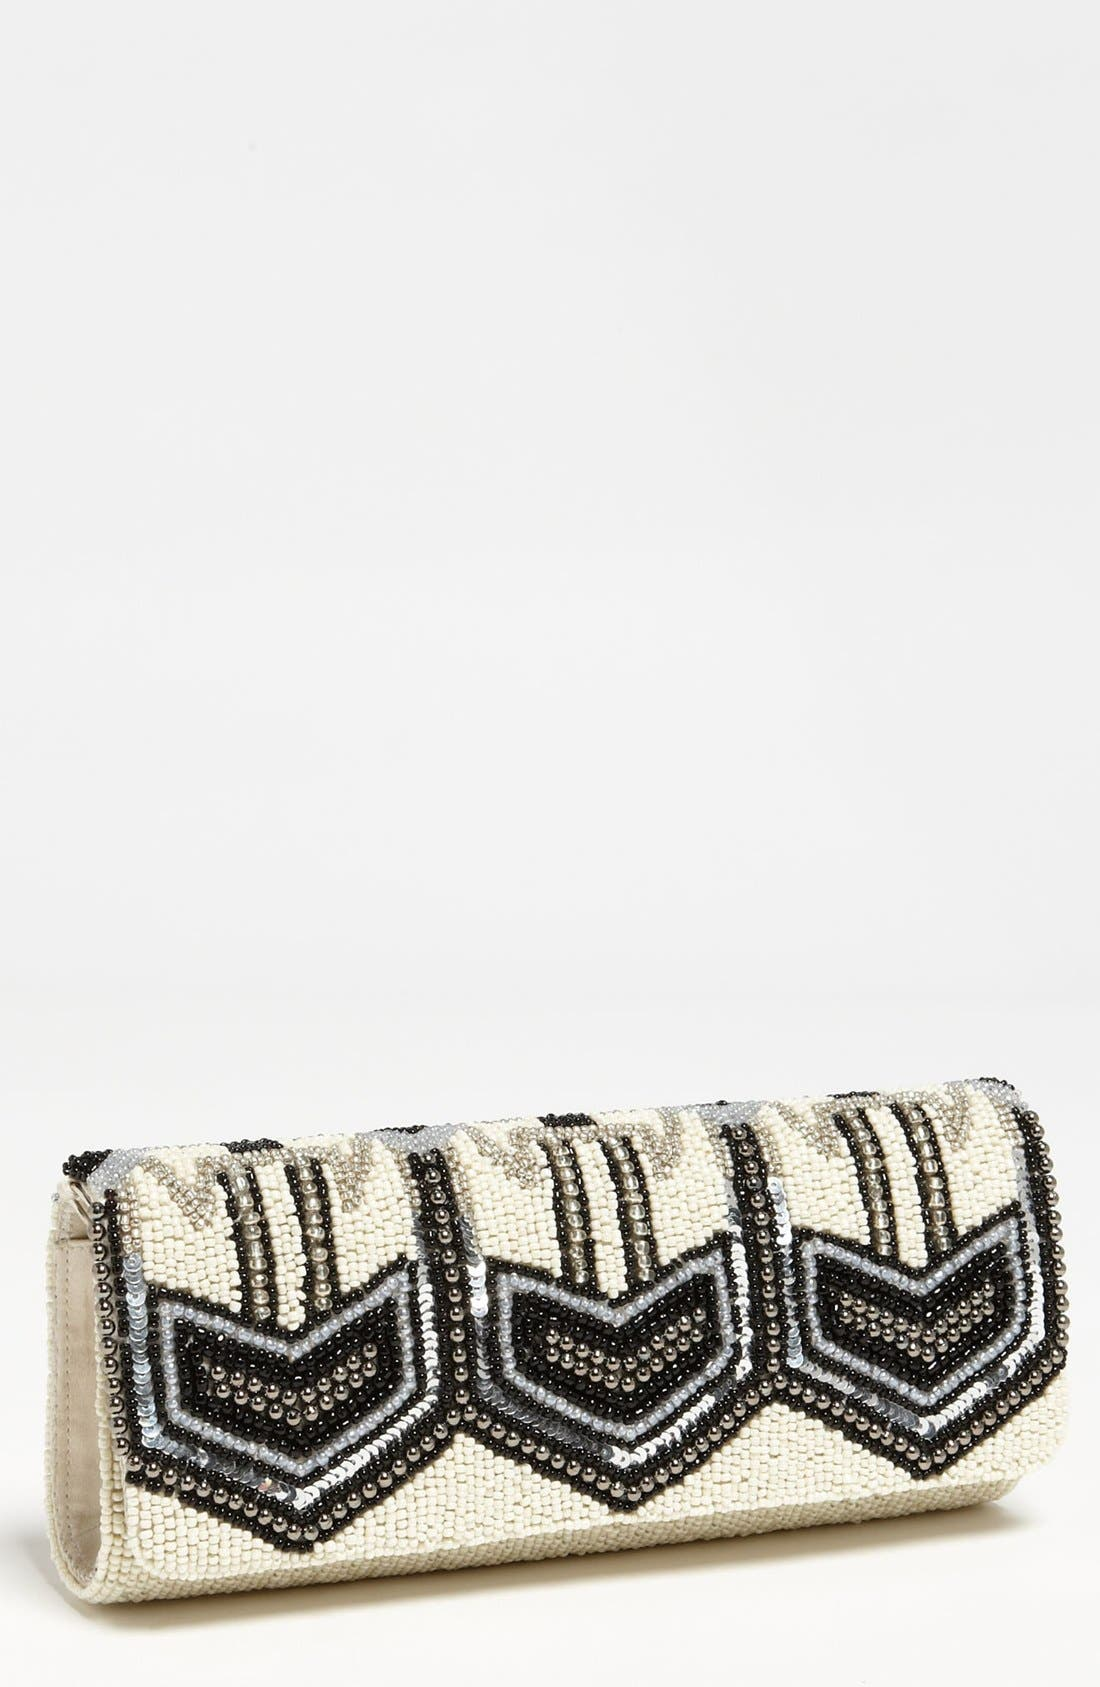 Alternate Image 1 Selected - Moyna 'Deco' Beaded Clutch